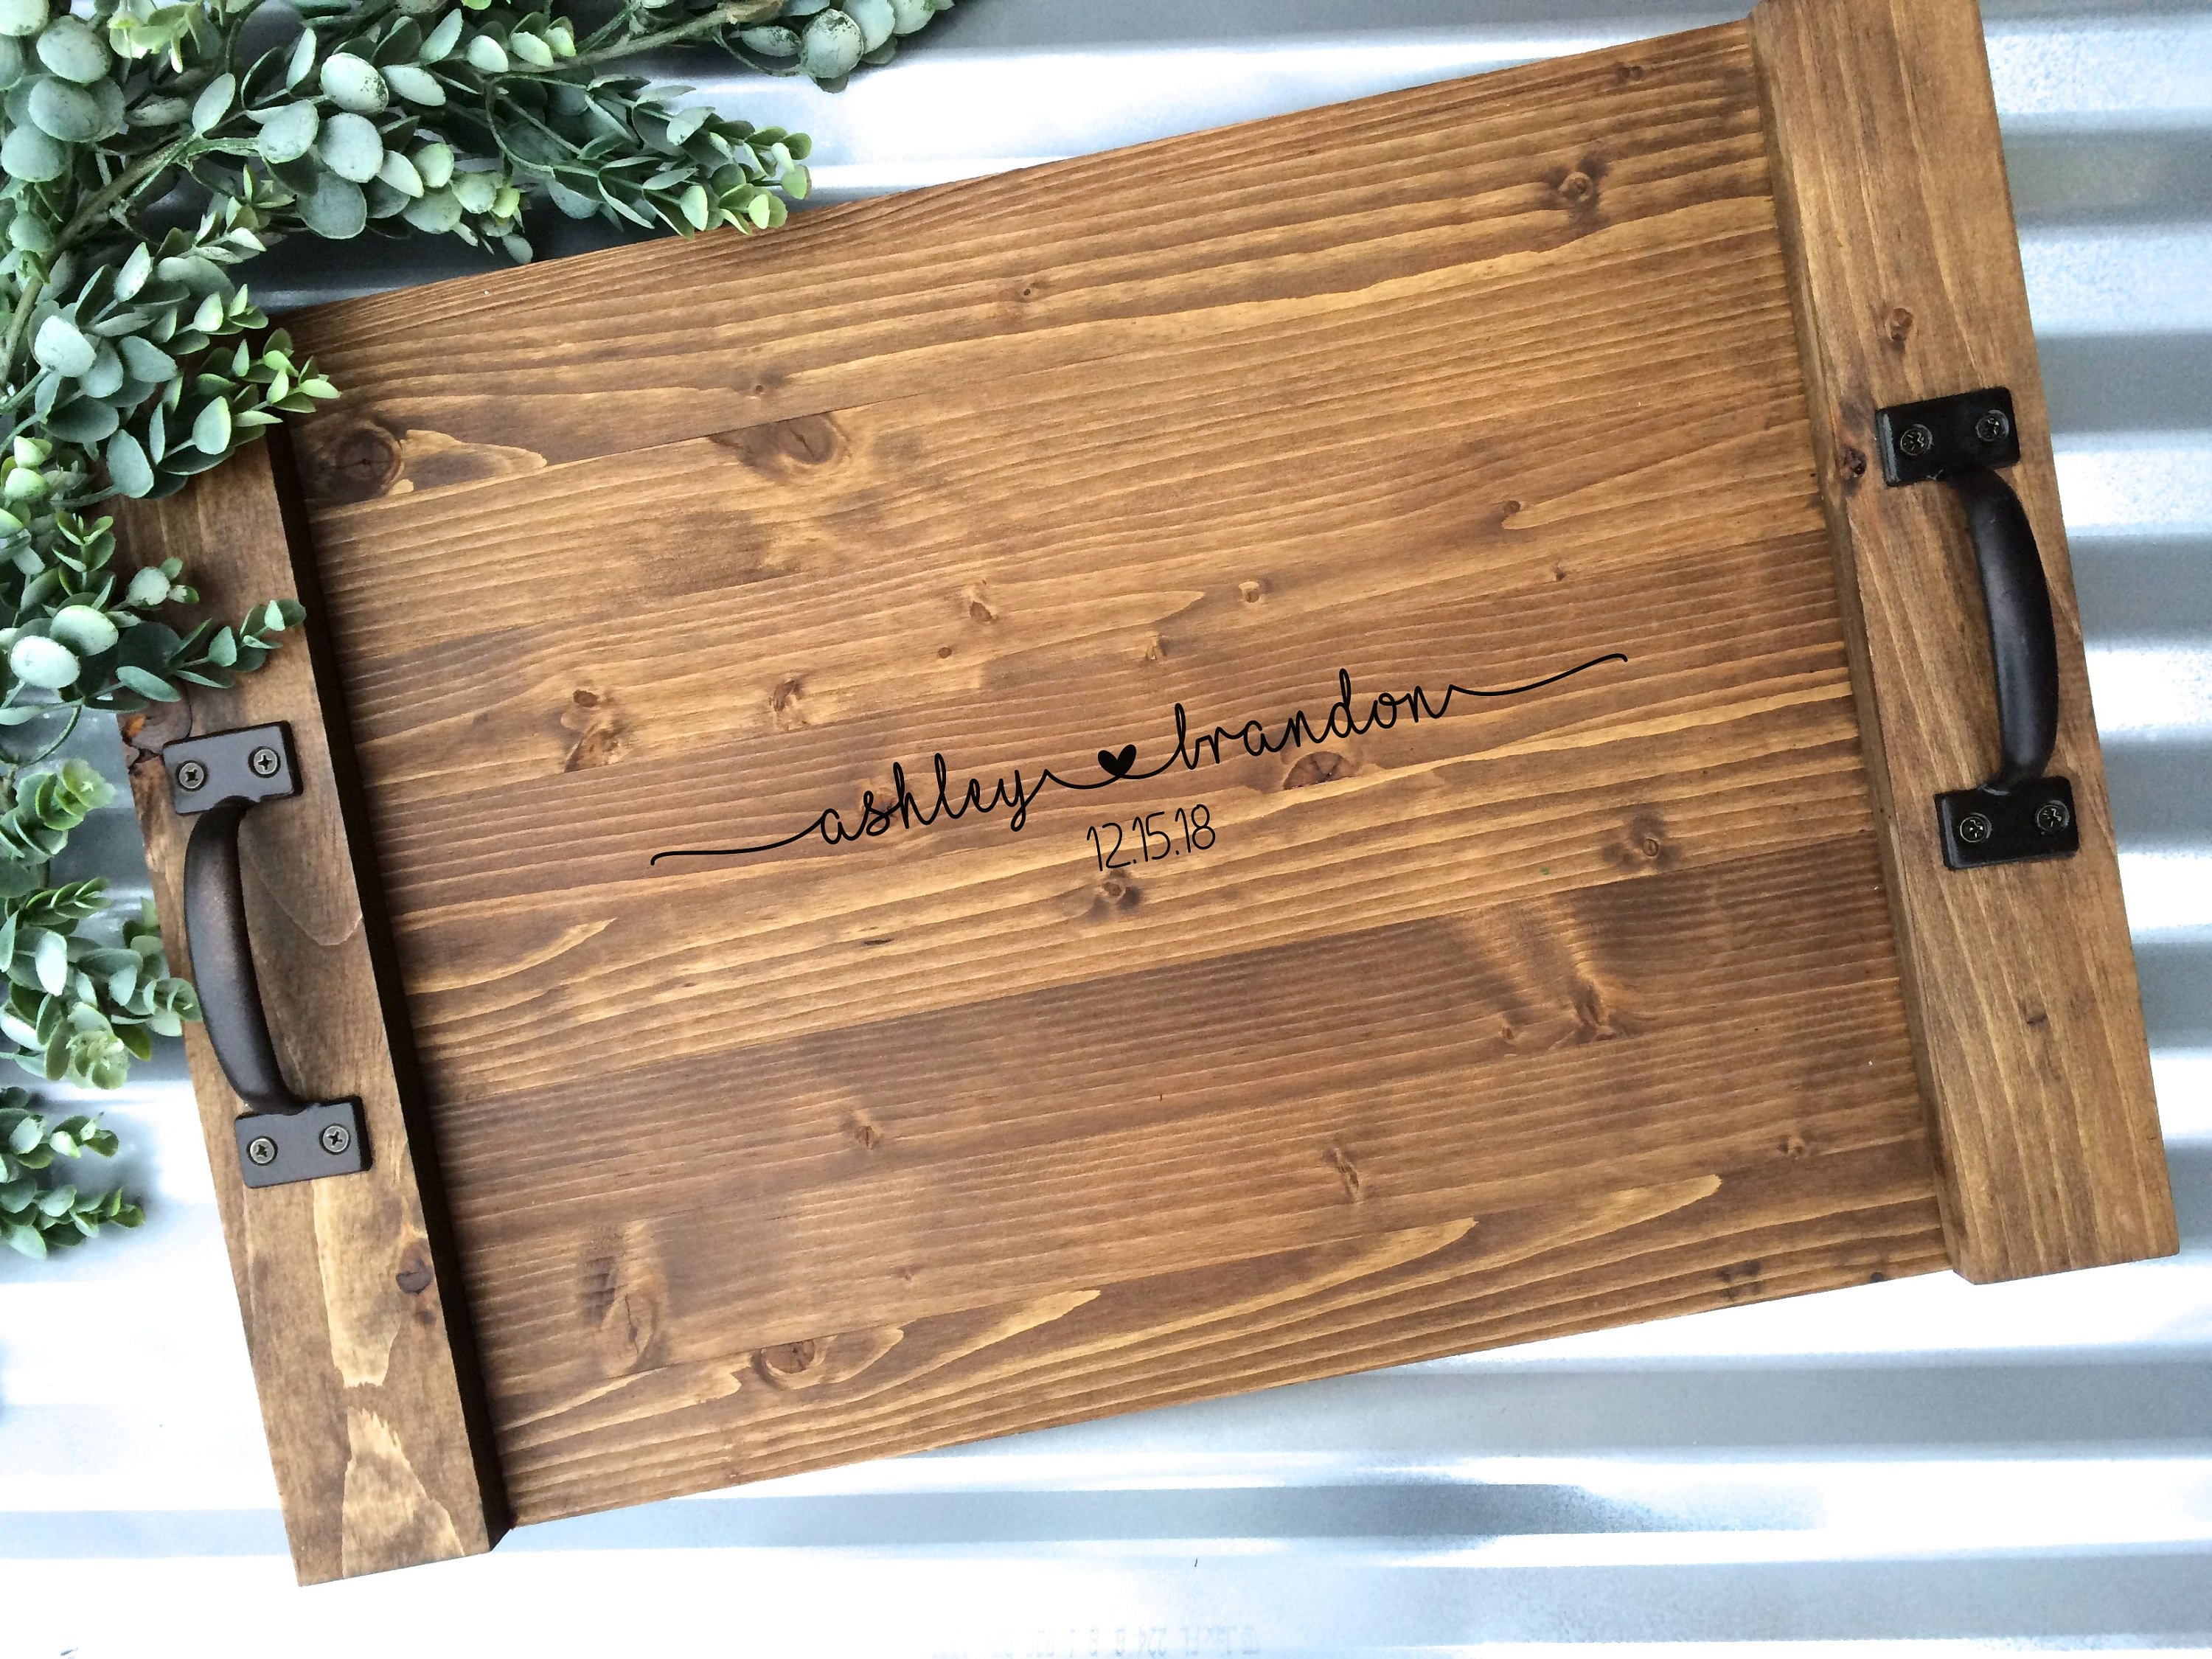 Ottoman Tray Personalized Rustic Wood Tray Farmhouse Decor Tray Wood Serving Tray Gift Serving Tray Wood Wood Tray Diy Tray